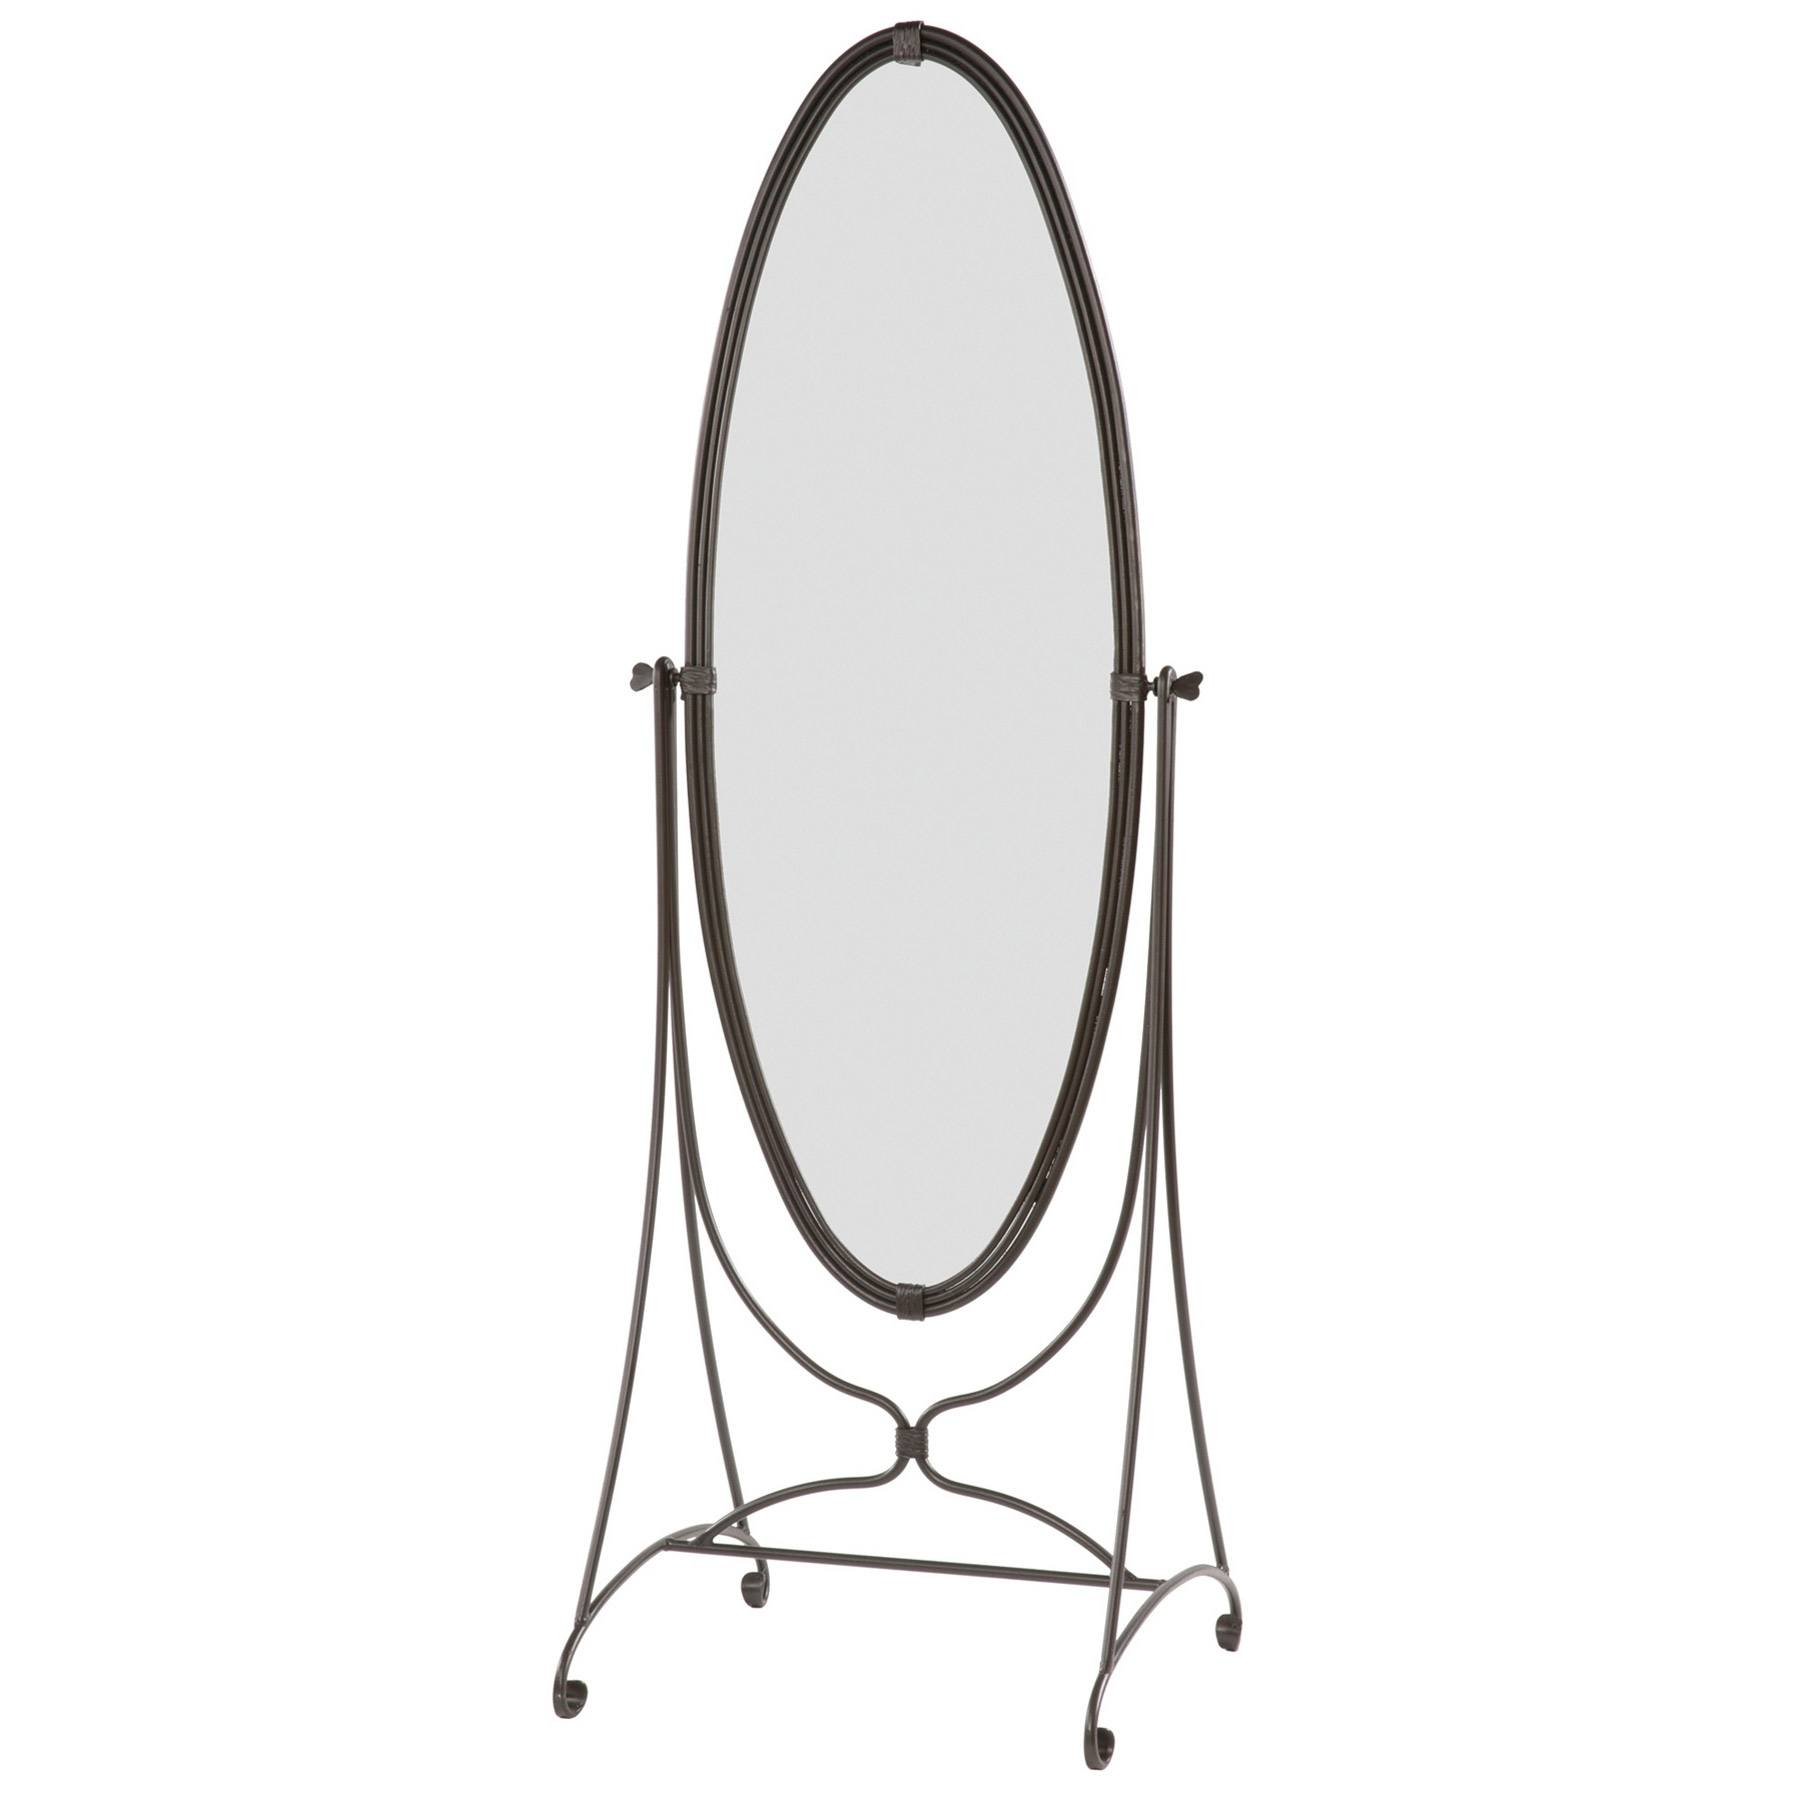 Queensbury Standing Mirror, Corner Standing Mirror - Fresh Bathroom regarding Wrought Iron Standing Mirrors (Image 13 of 25)